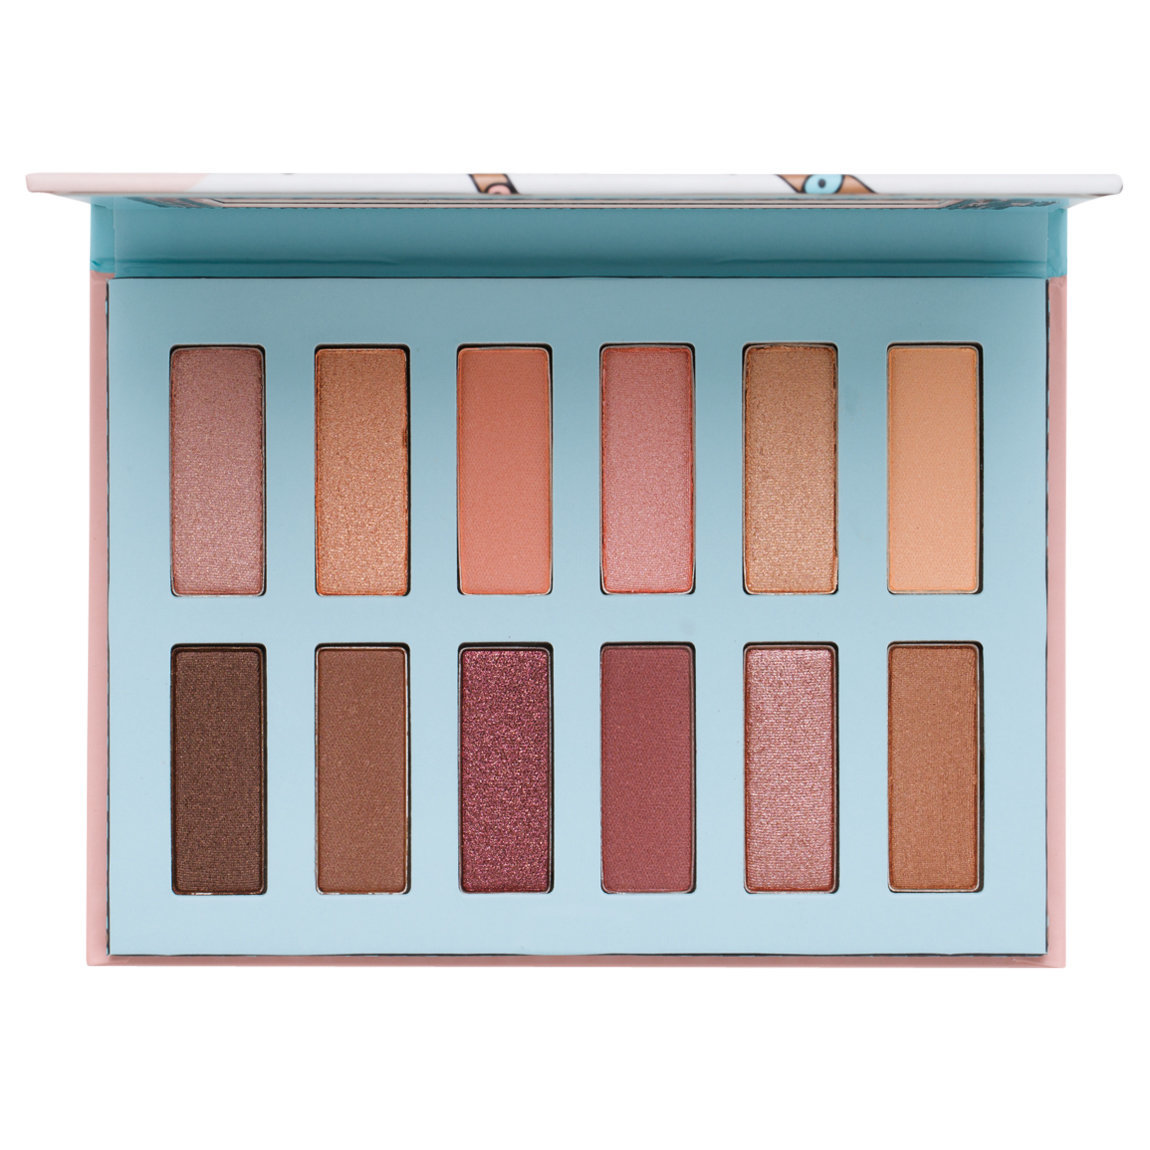 Benefit Cosmetics Vanity Flare Eyeshadow Palette product swatch.